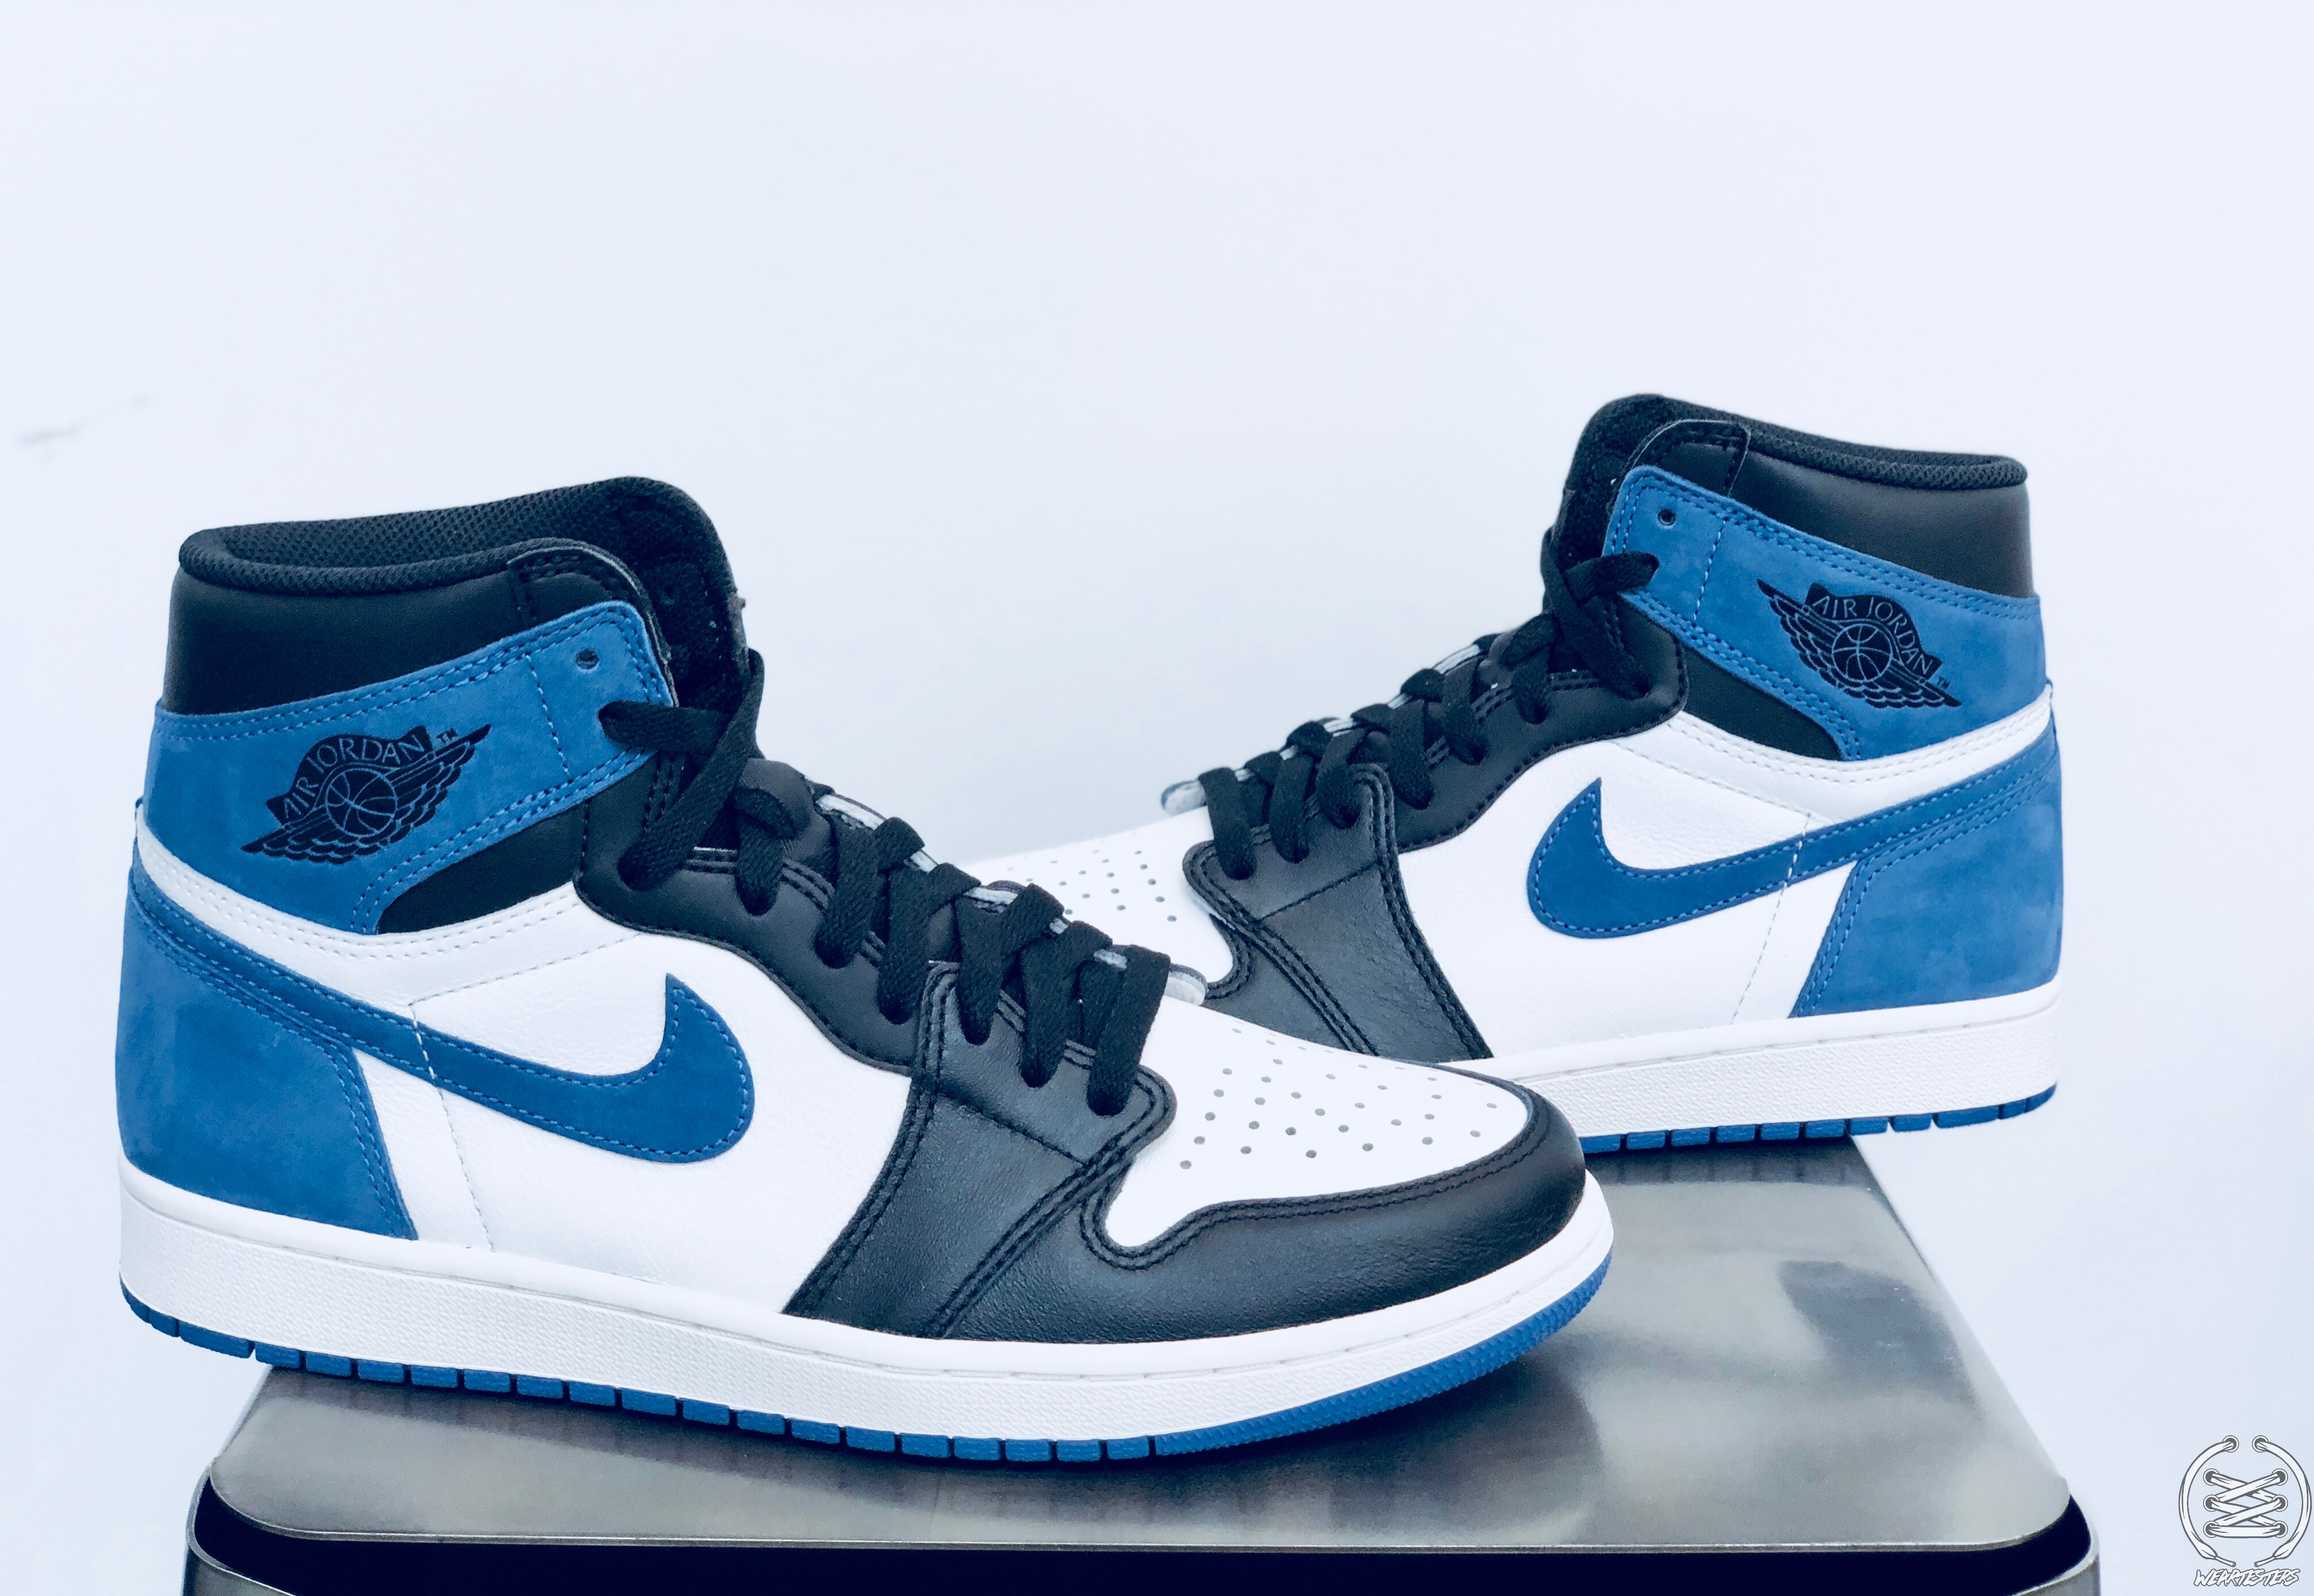 Air Jordan 1 Blue Moon Best Hand In The Game Collection 5 Weartesters